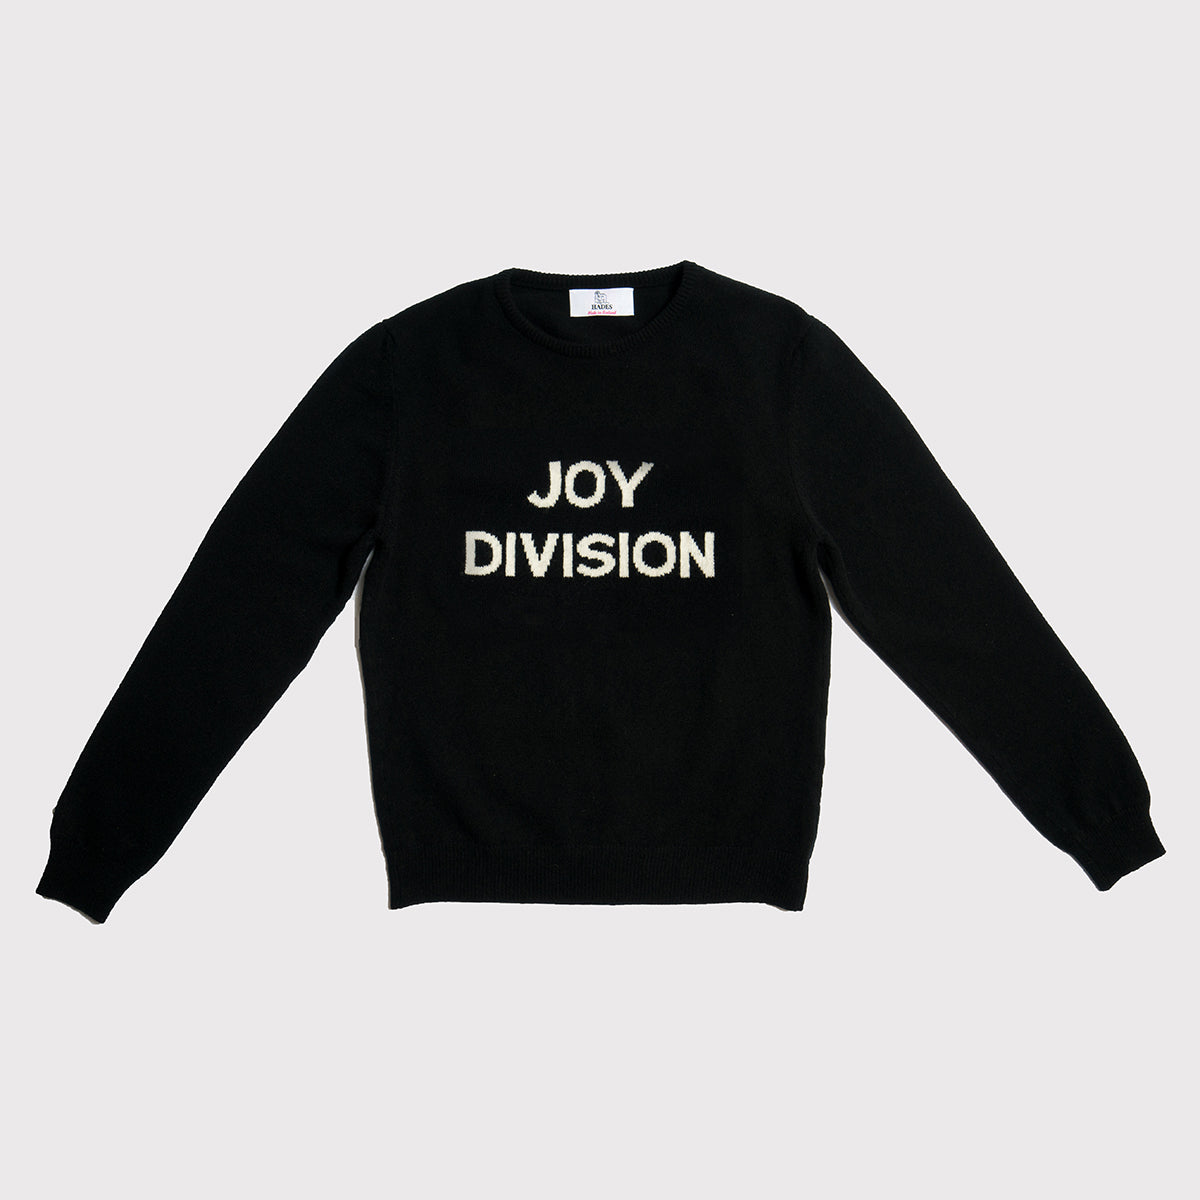 Joy Division | Black & White | Men's- M & XL Available